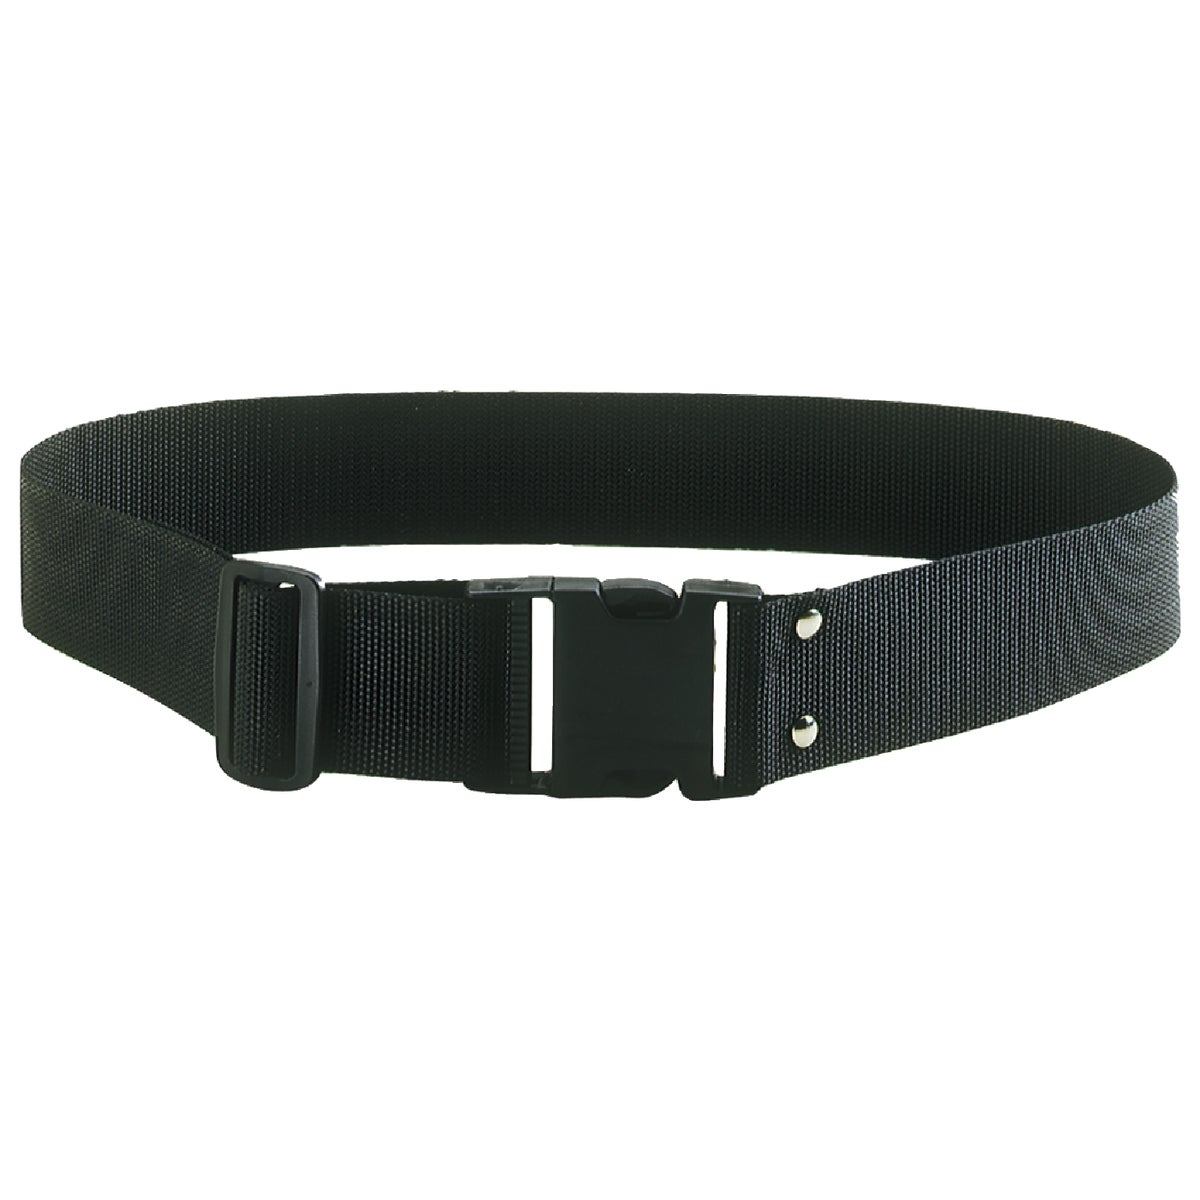 29-46 POLY WEB BELT - 3505 by Custom Leathercraft